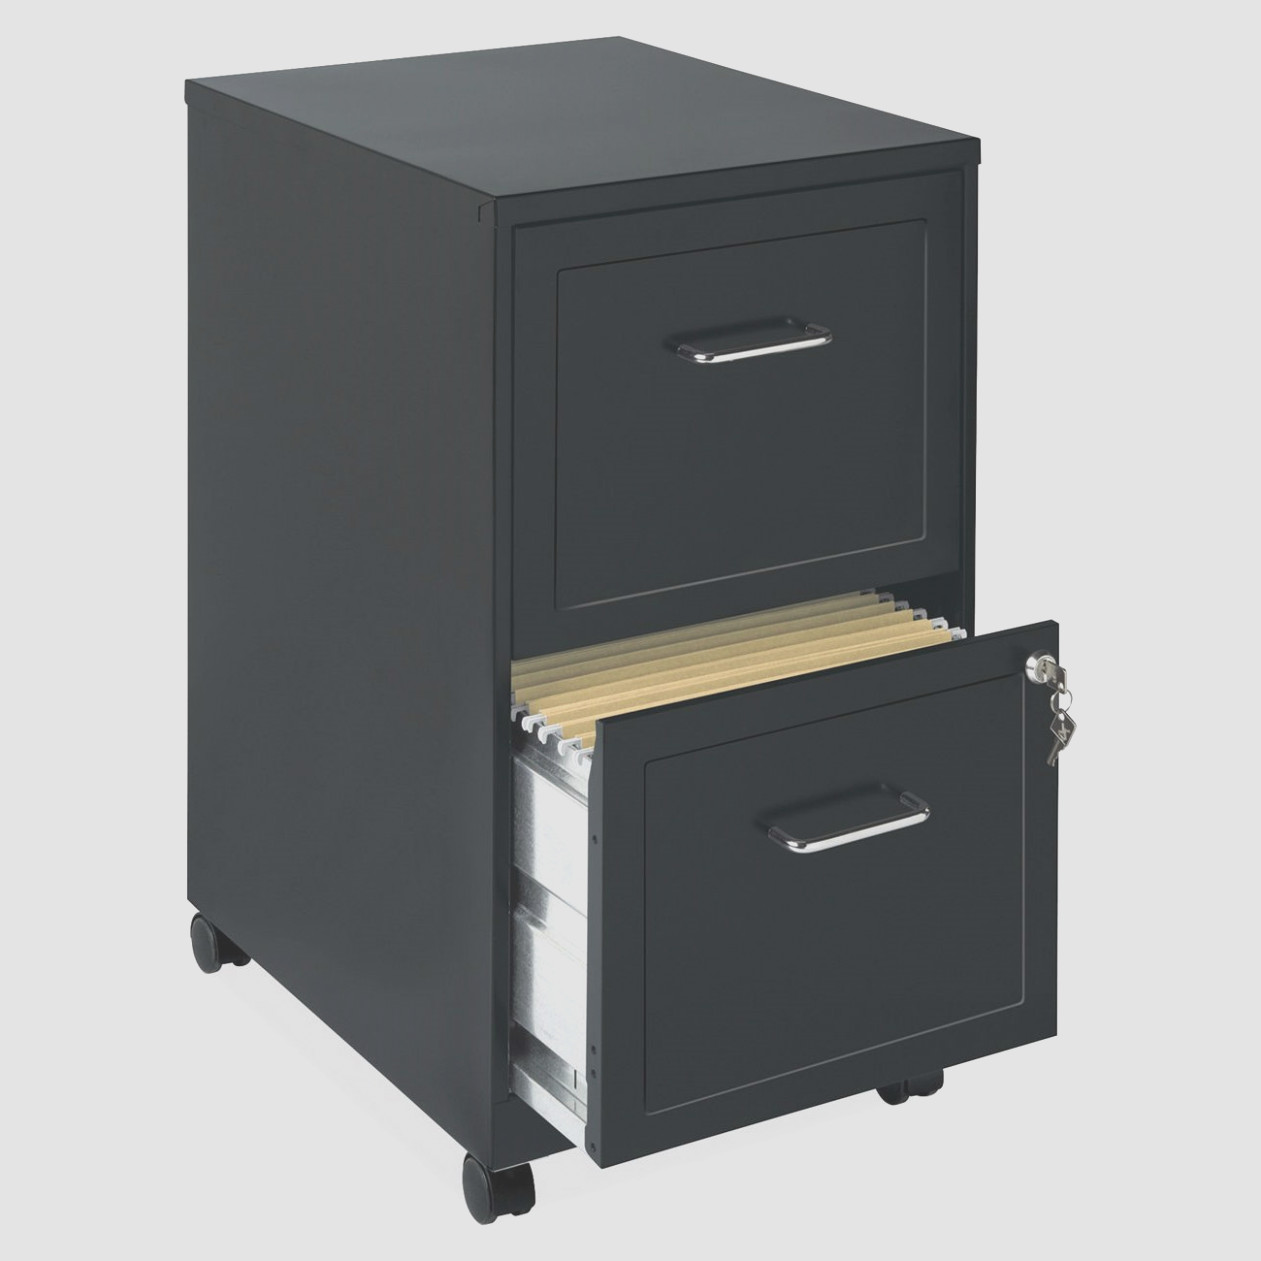 1 Drawer File Cabinet With Wheels